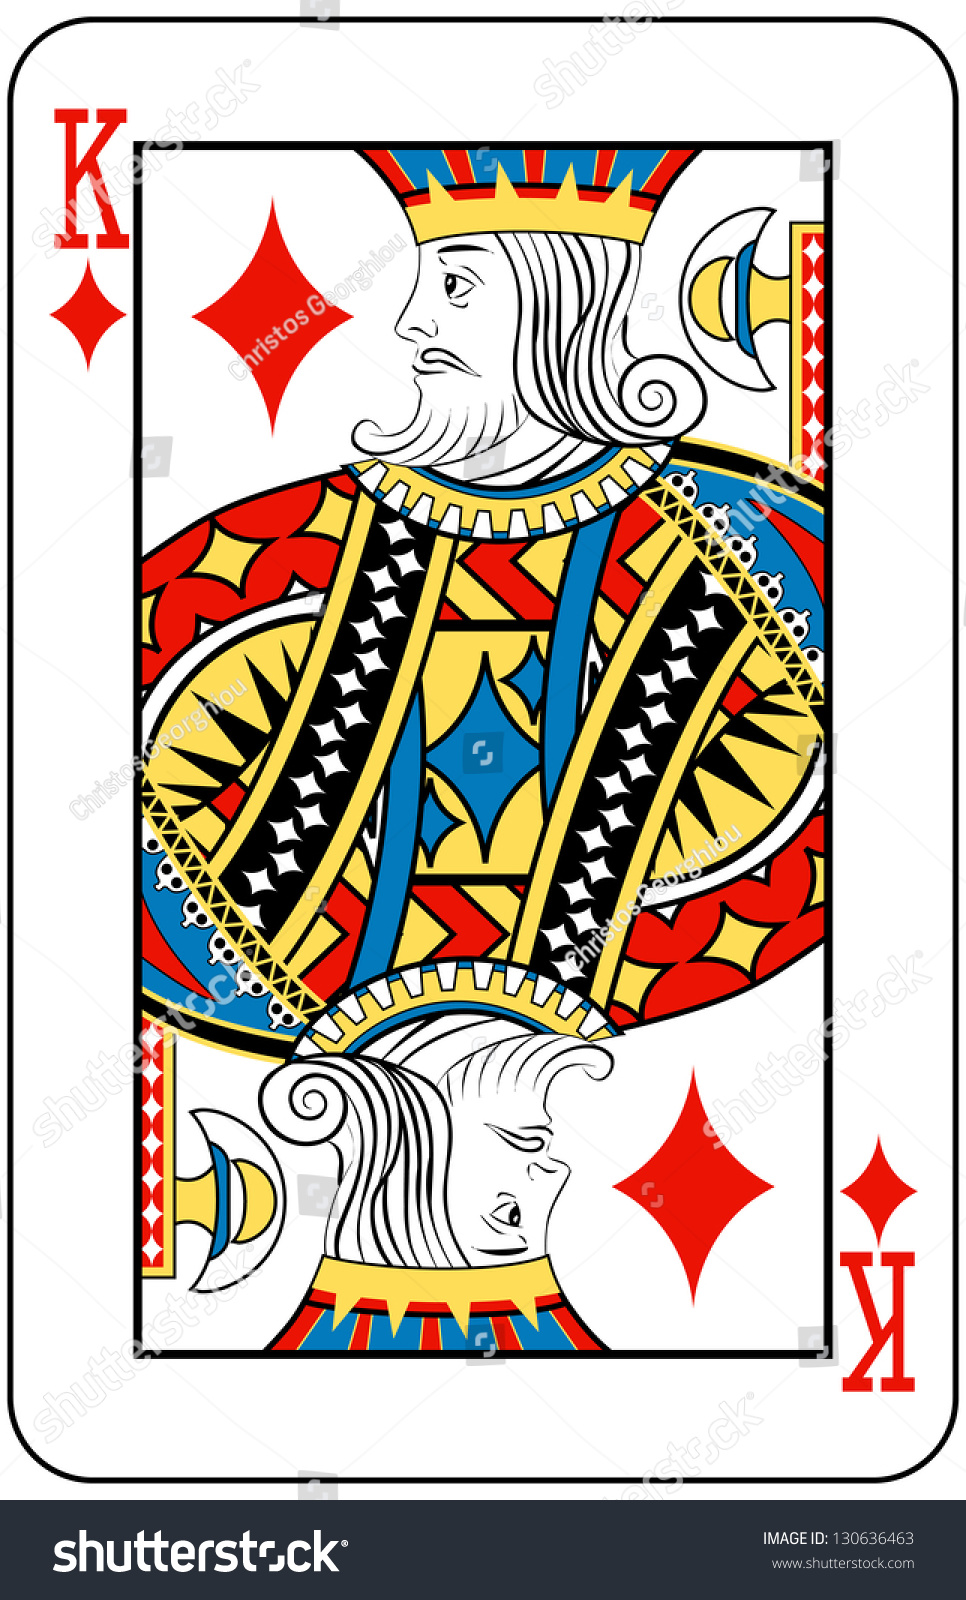 King Diamonds Playing Card Stock Illustration 130636463 ...